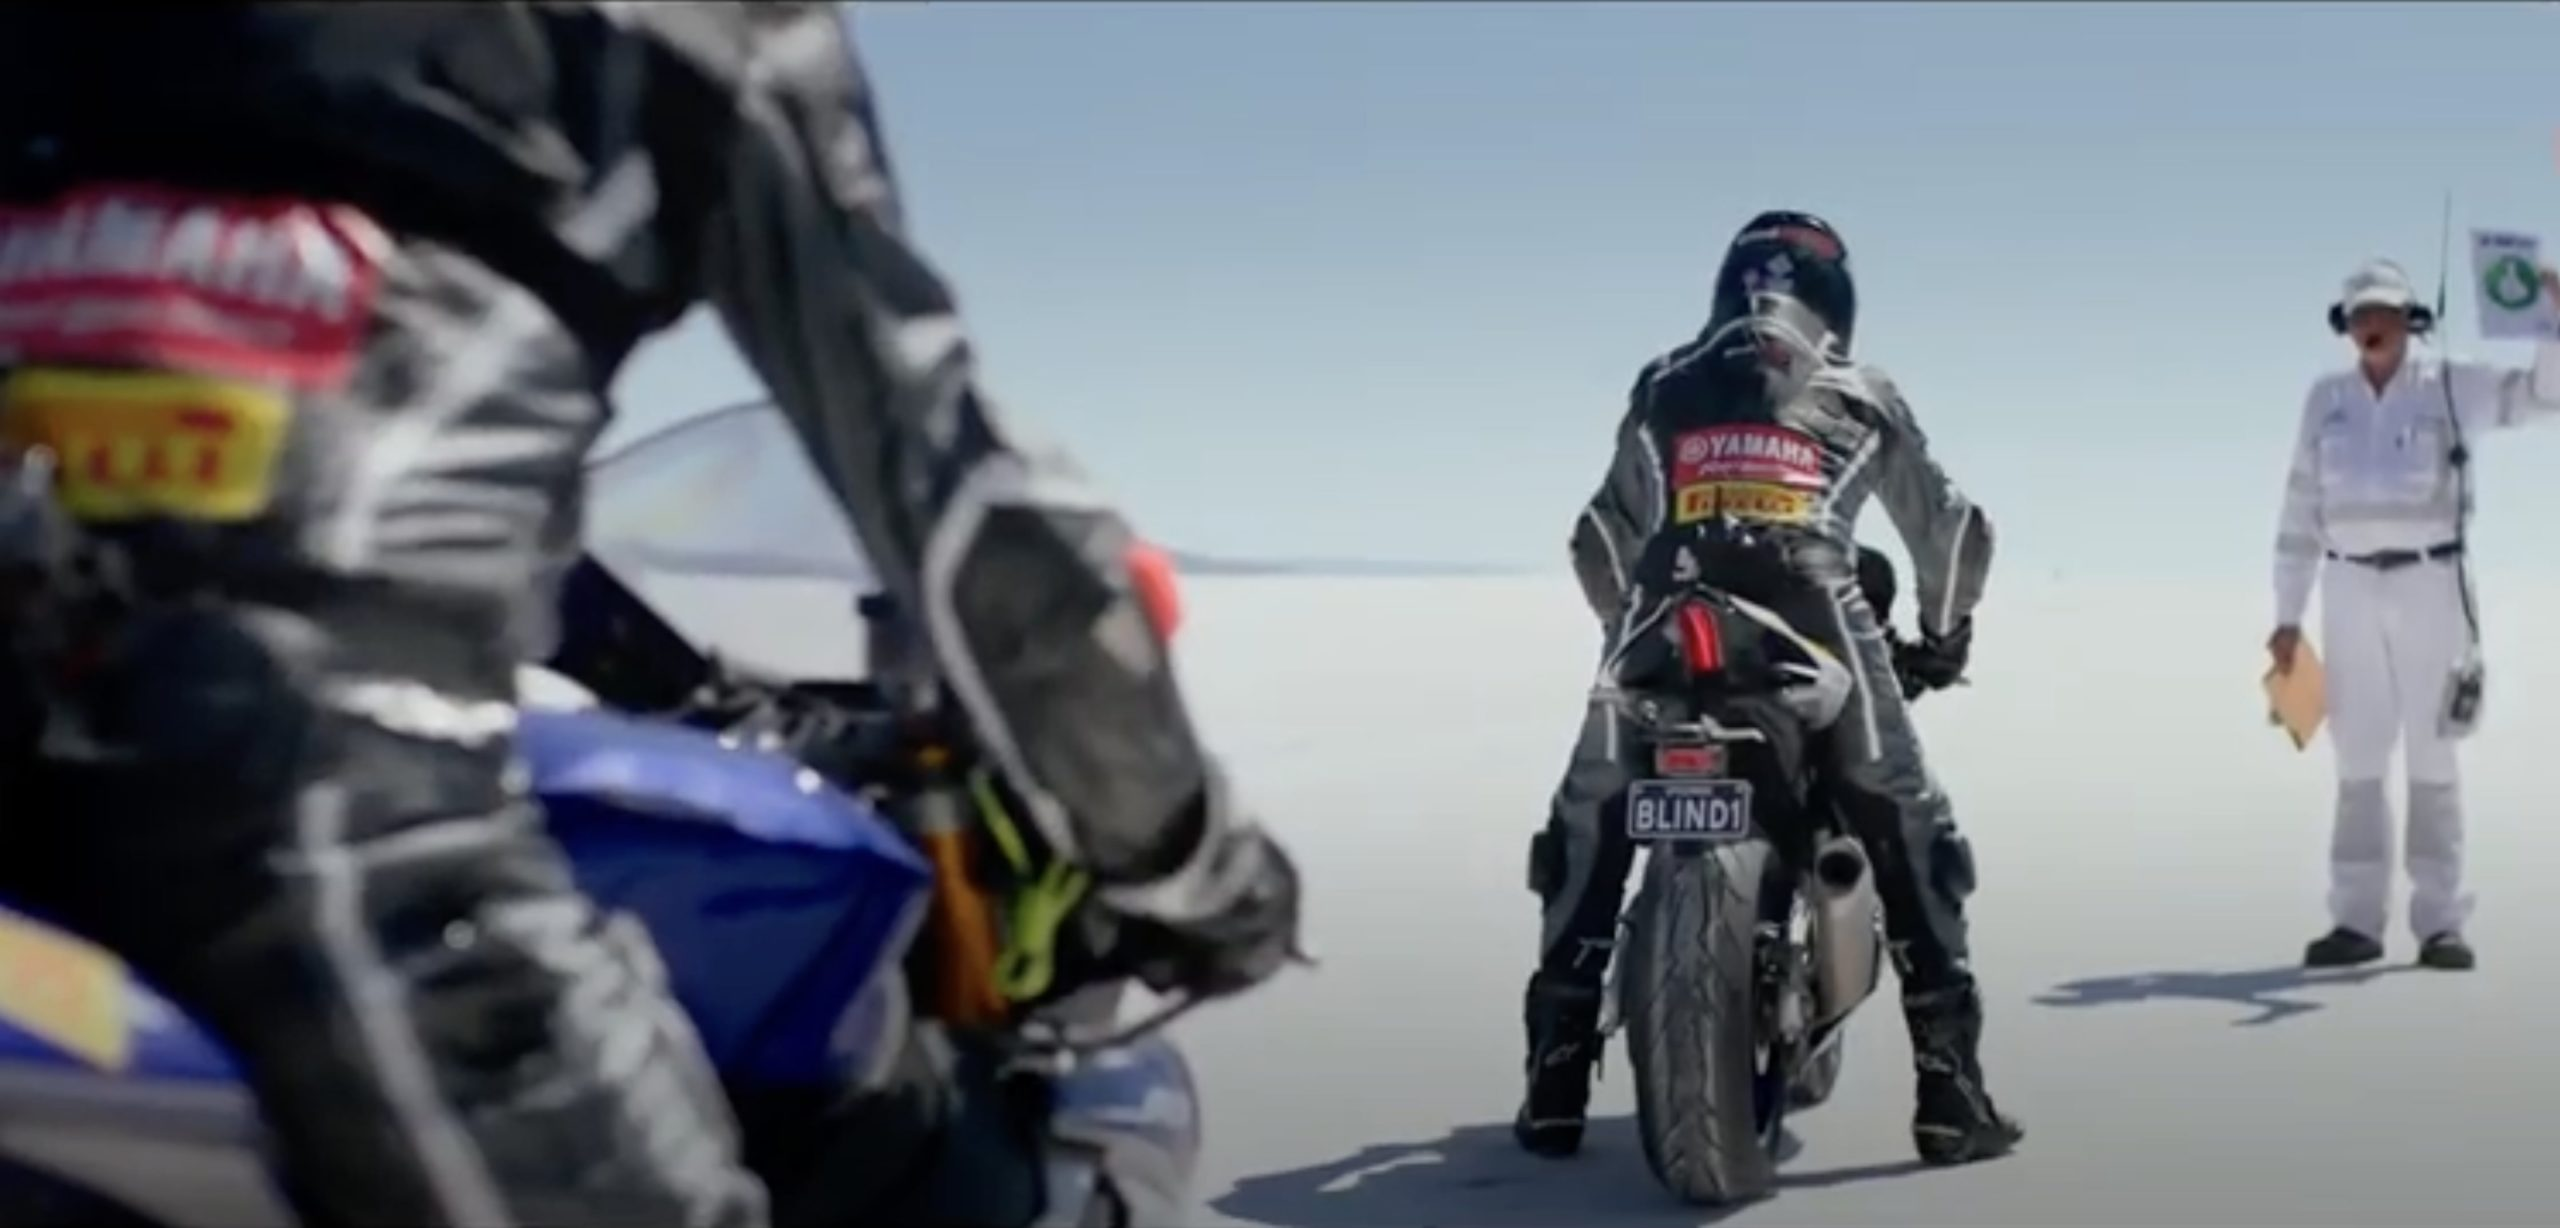 Ben Felton and former Grand Prix champion Kevin Magee about to cross the salt flats in pursuit of the world's fastest blind motorcyclist